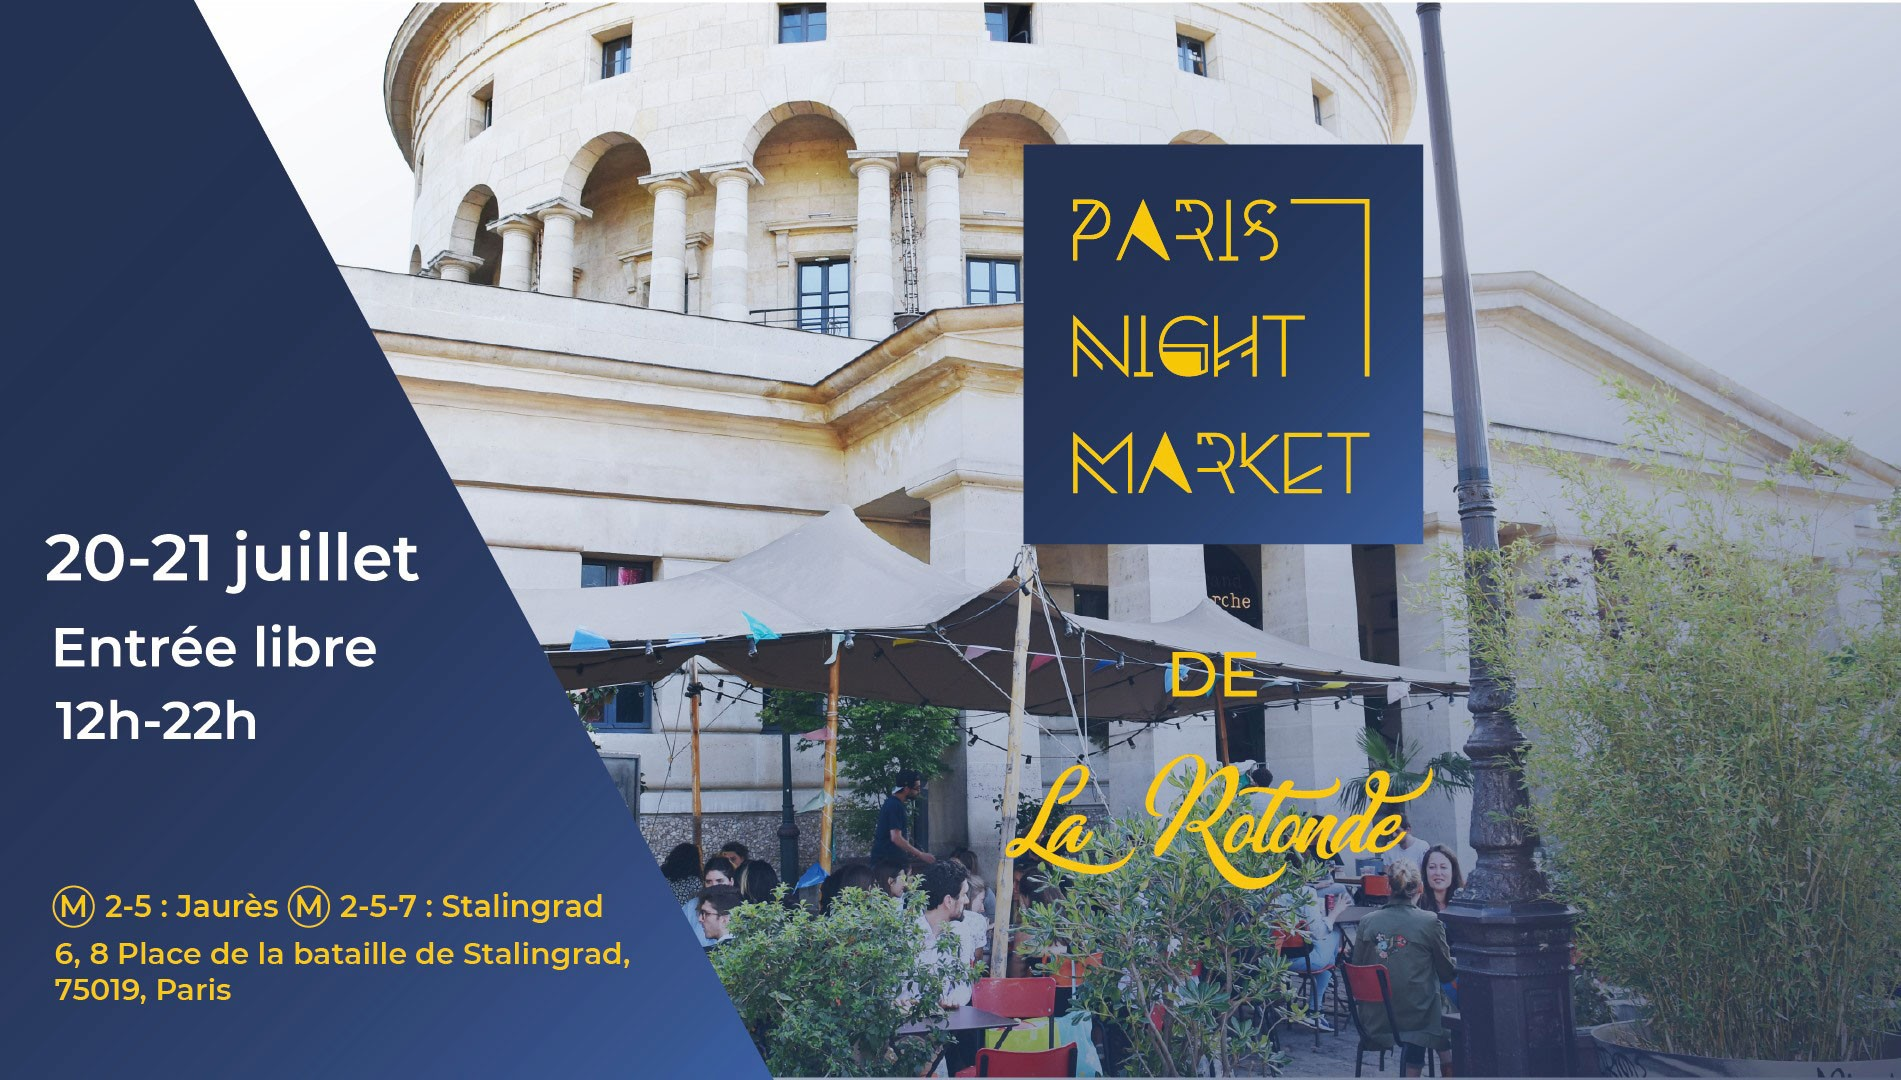 Night Market de La Rotonde